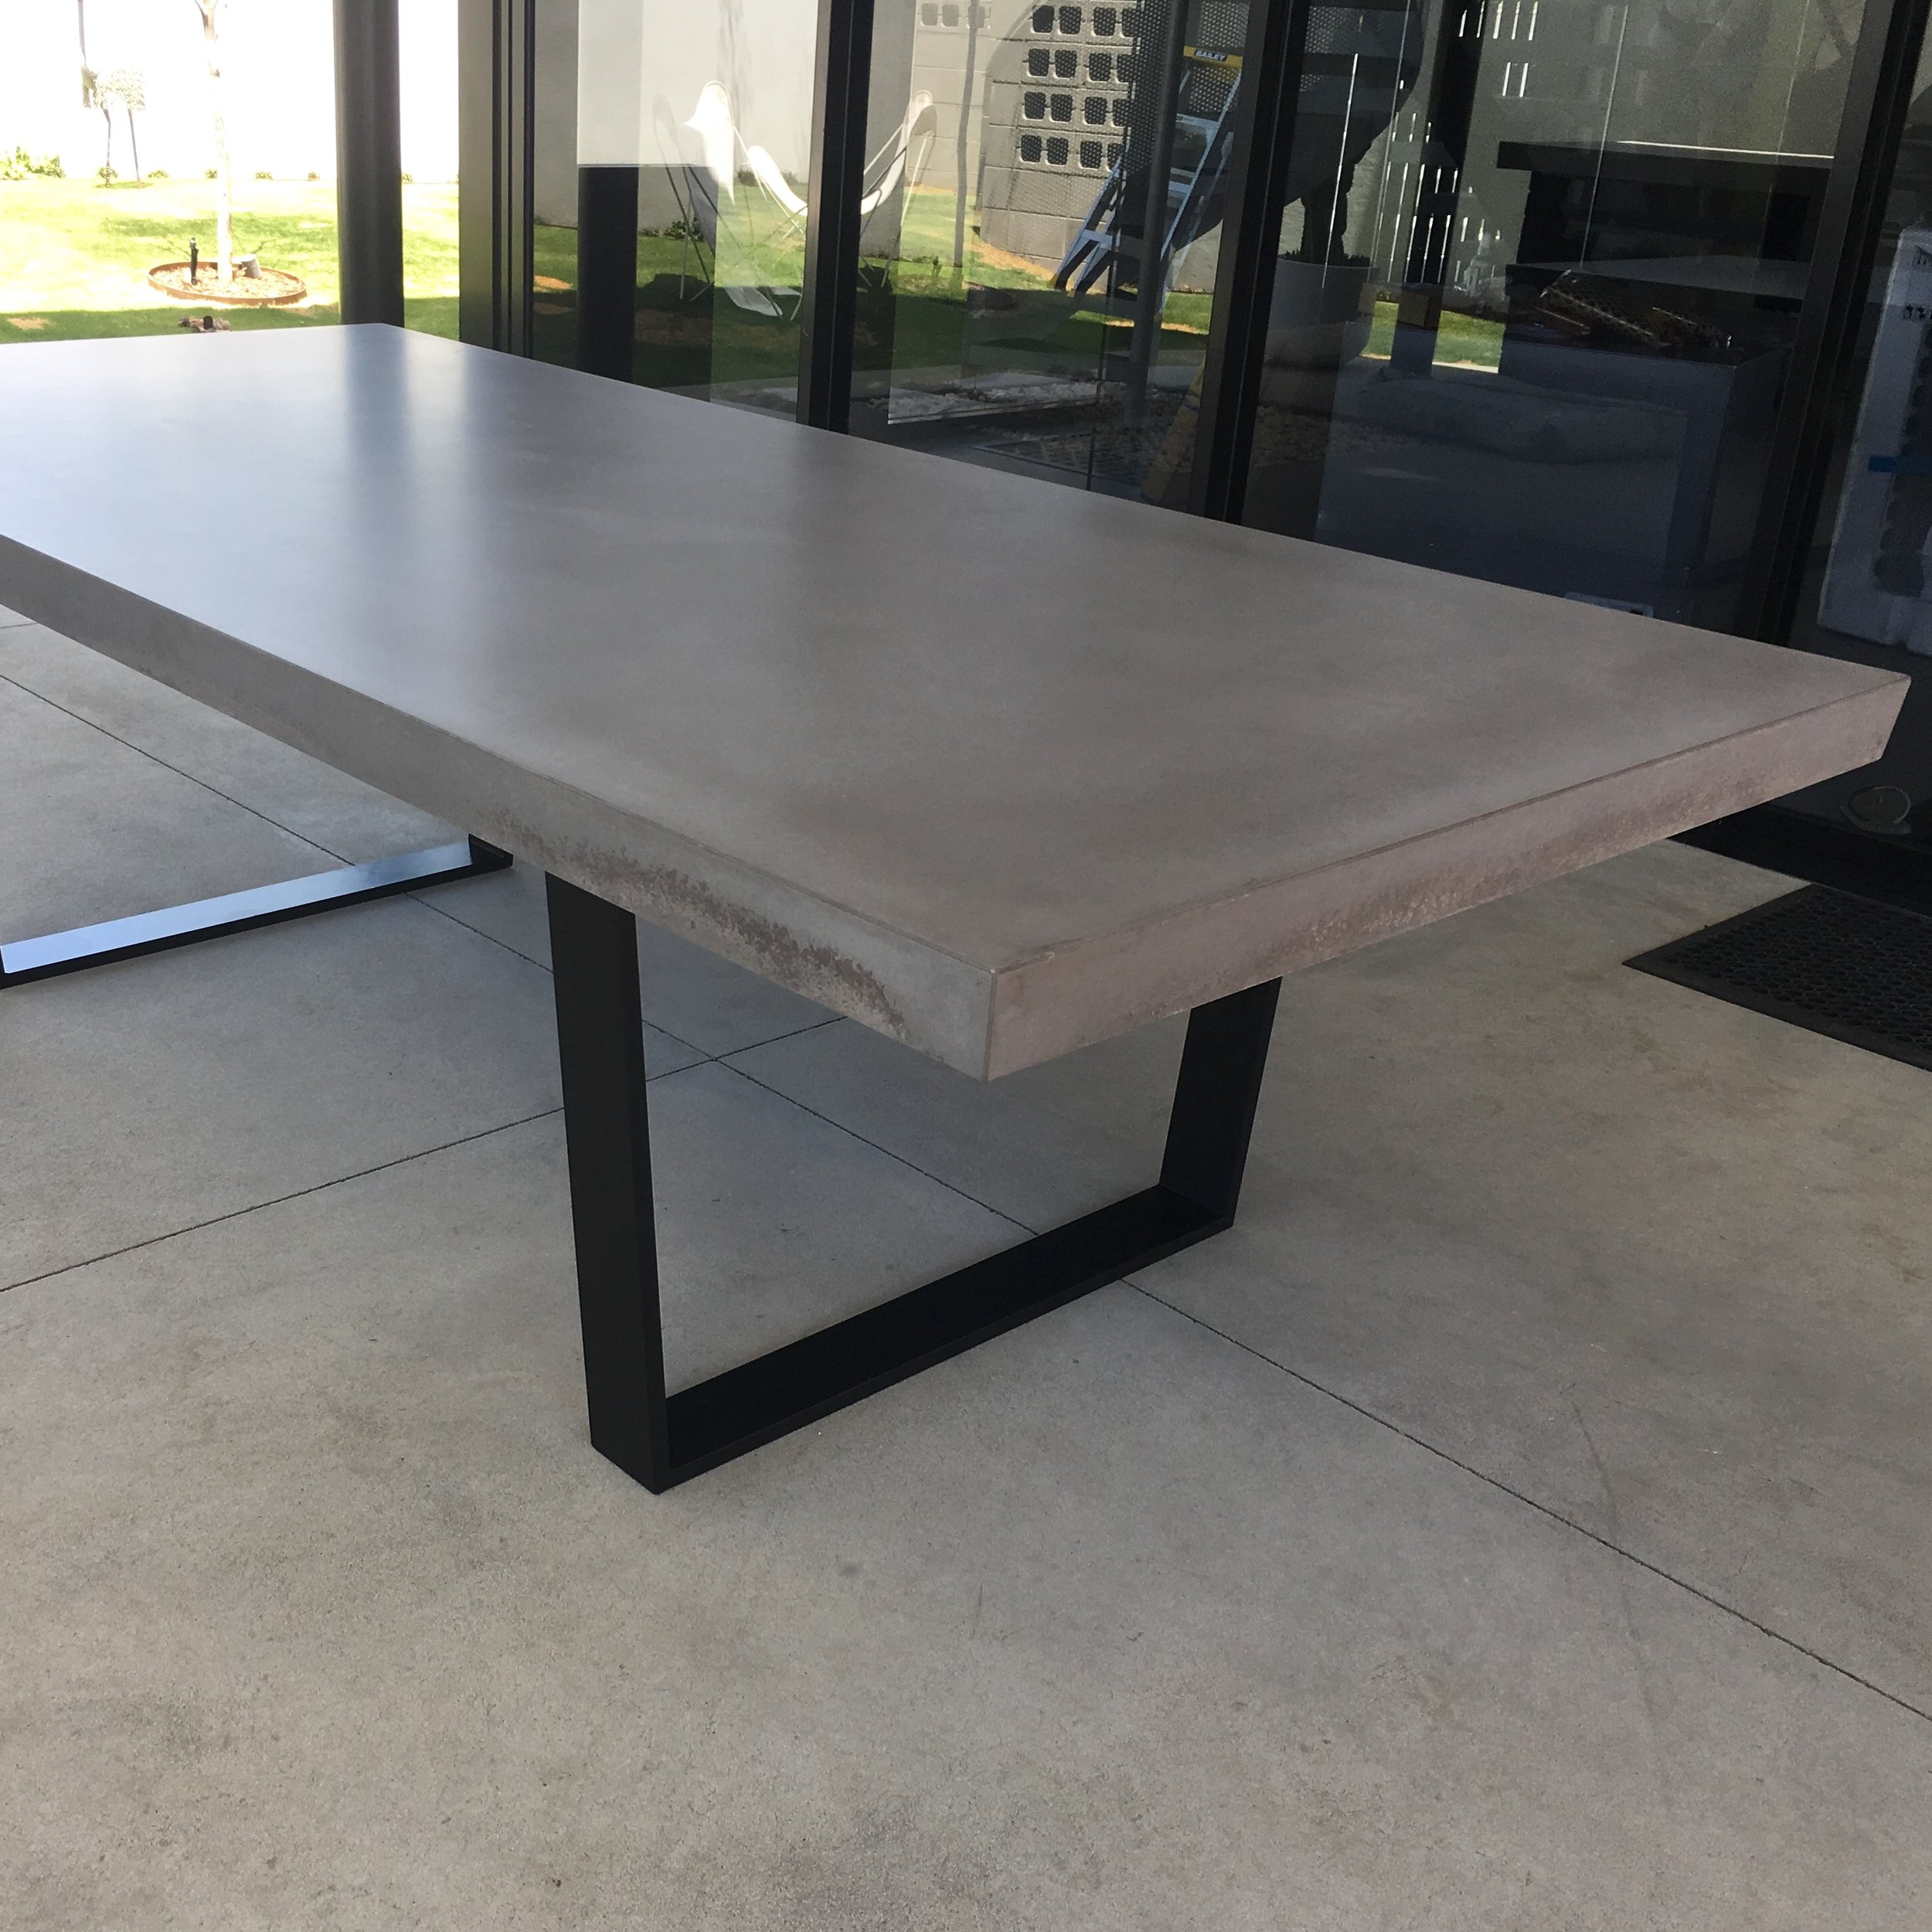 7 Degree Concrete Table.JPG